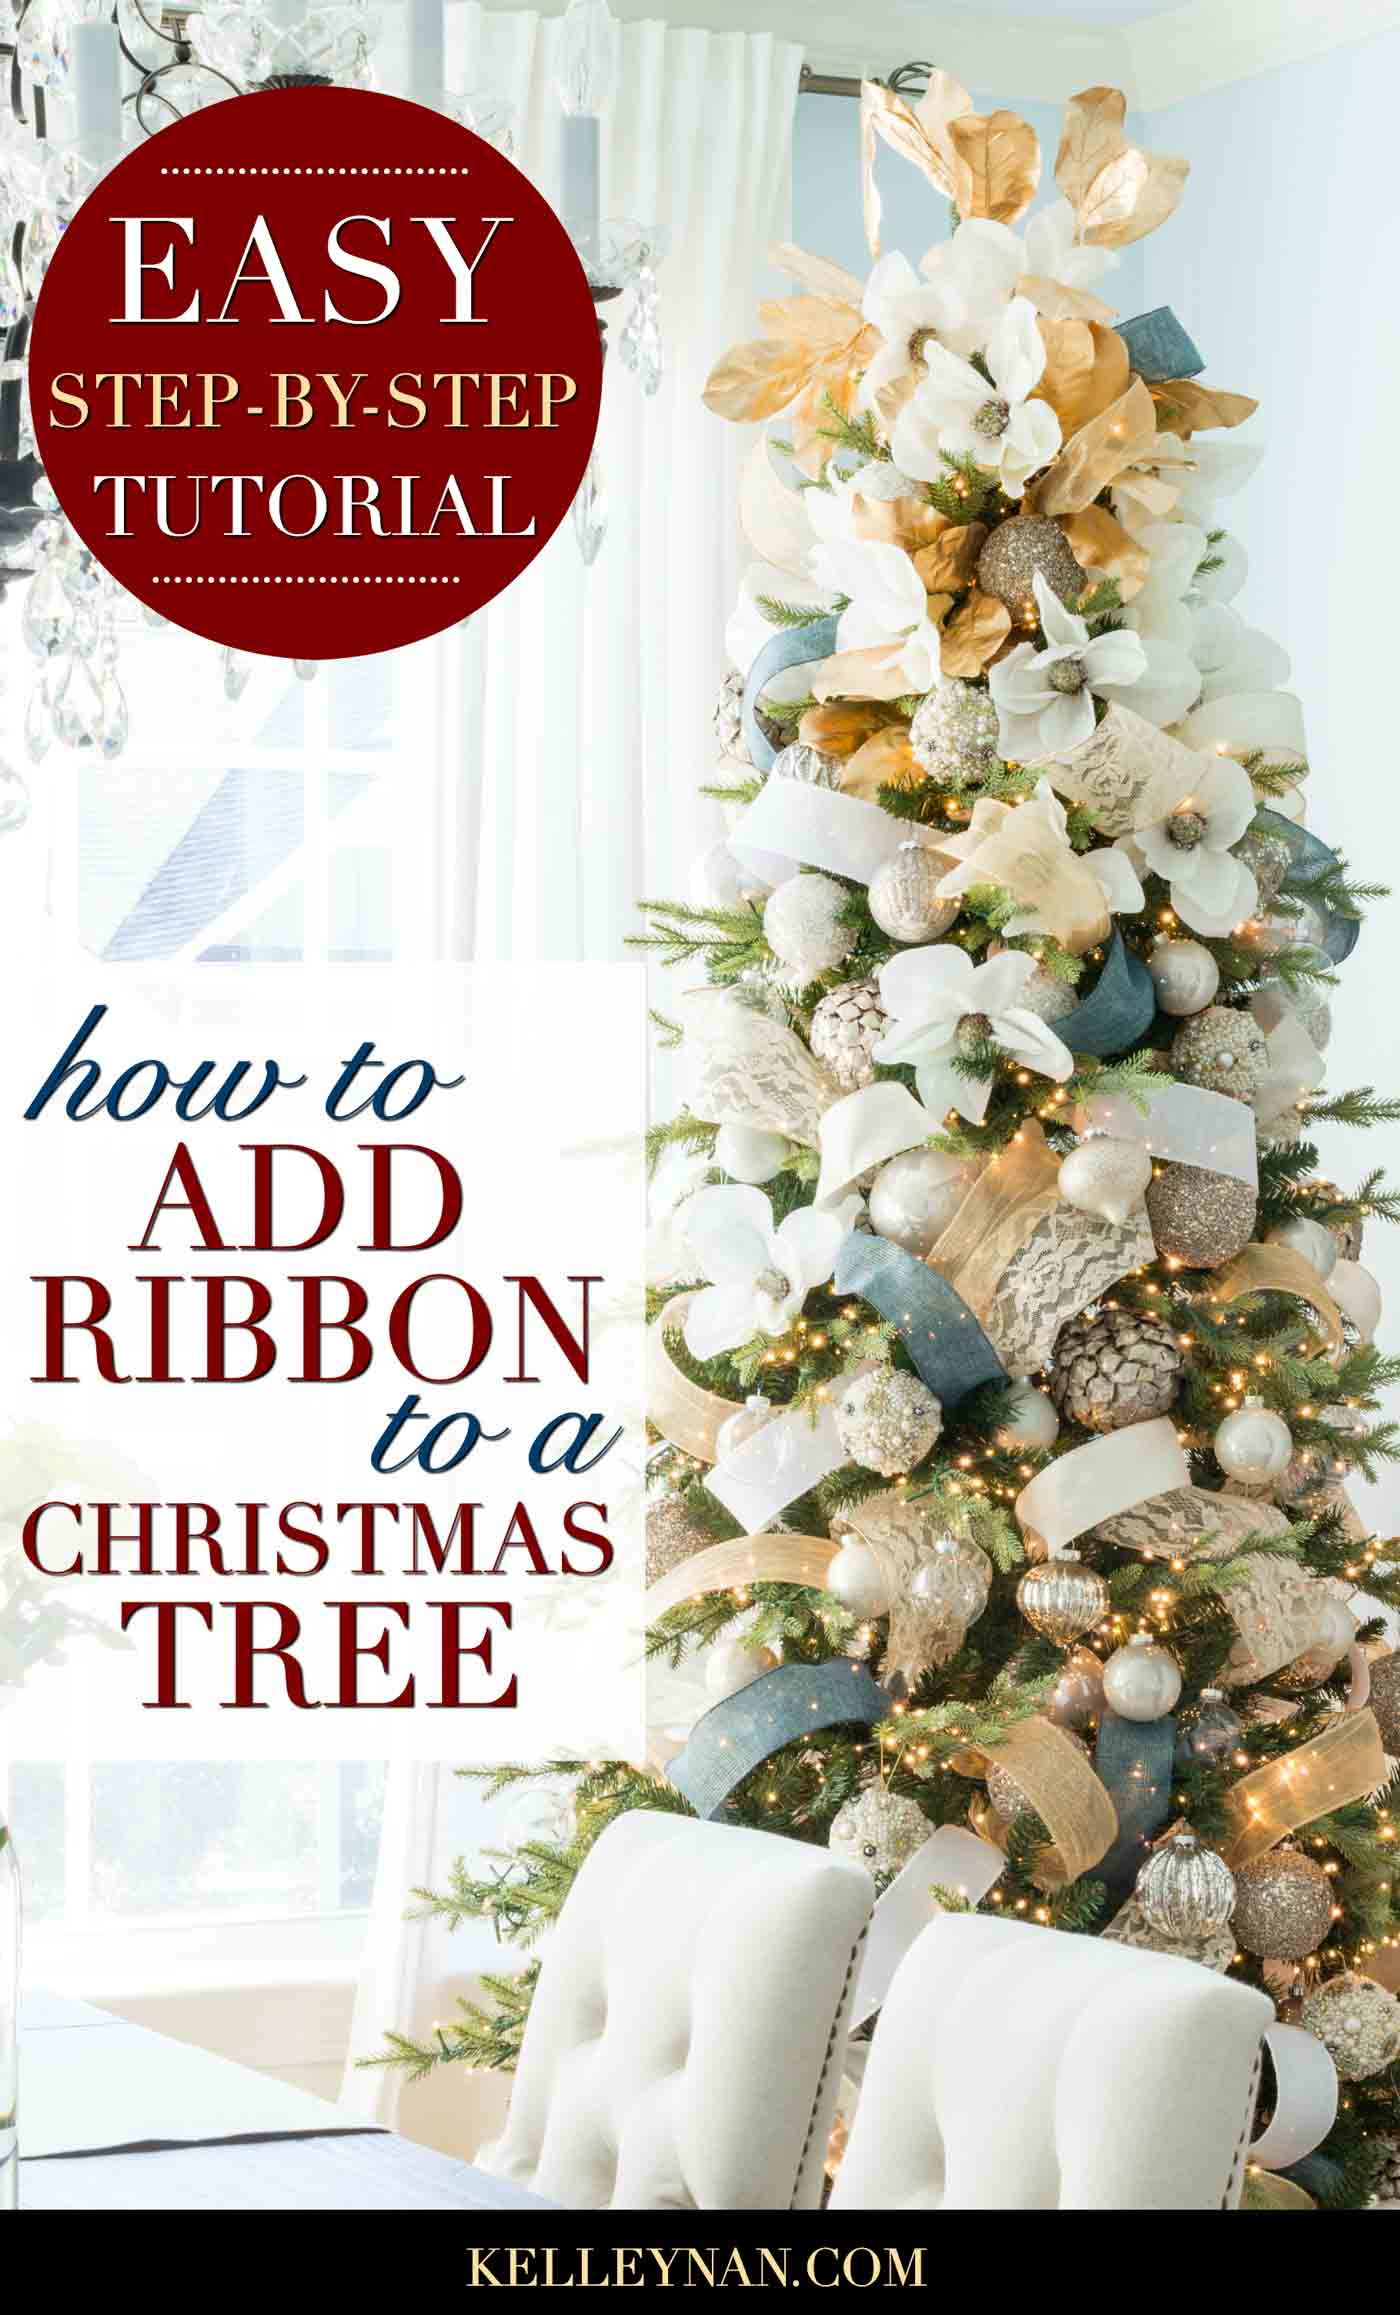 How to Add Ribbon to a Christmas Tree Like a Pro! Step by Step Tutorial & How-To